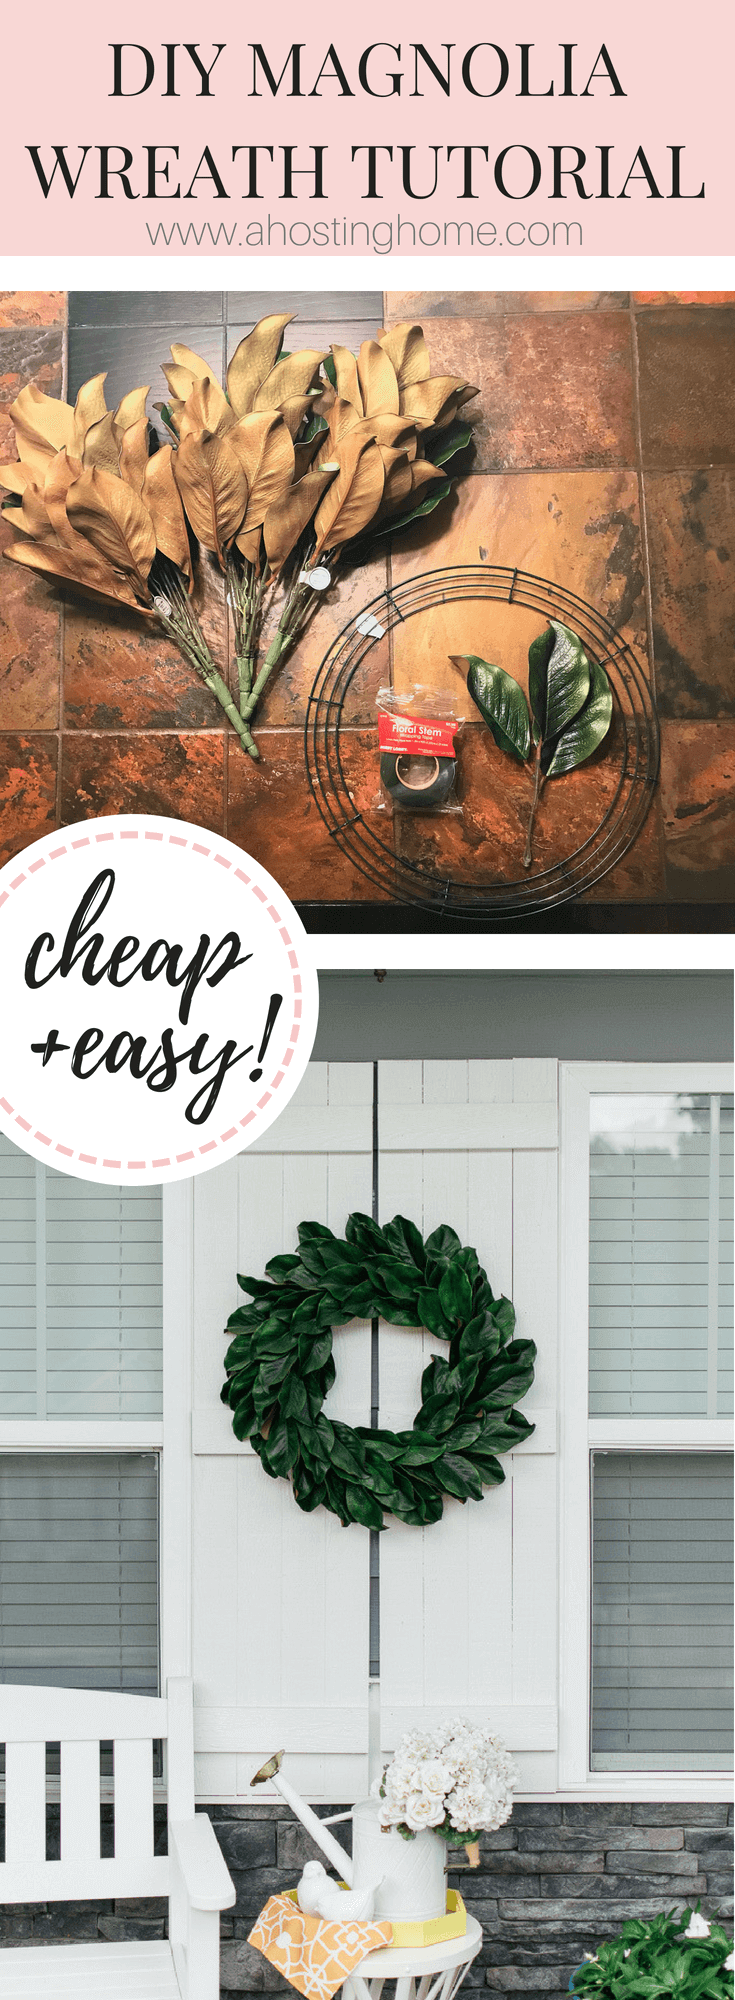 DIY Magnolia Wreath Tutorial // A Hosting Home, Atlanta Lifestyle and Home Blogger Cathy Nugent, Front Porch Make-over